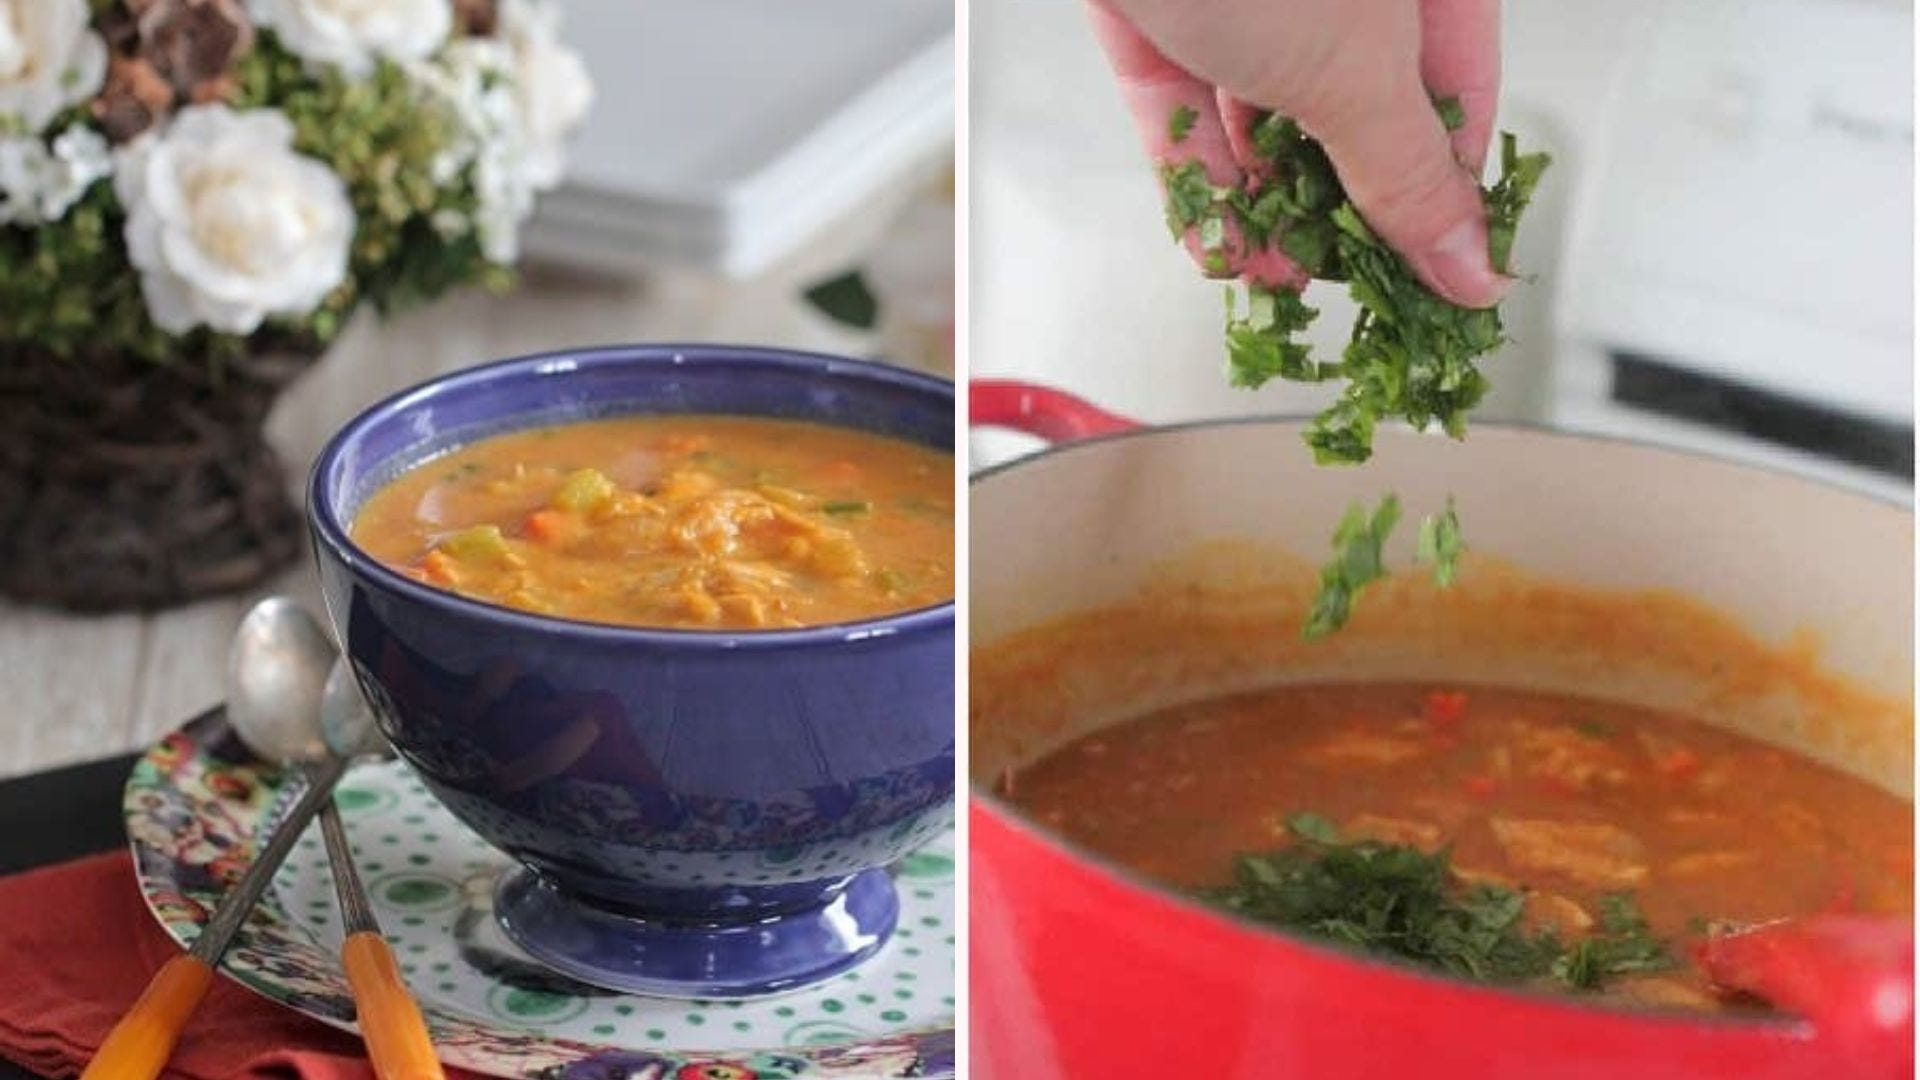 A blue bowl filled with pumpkin chicken soup; a hand sprinkling cilantro into a pot of soup